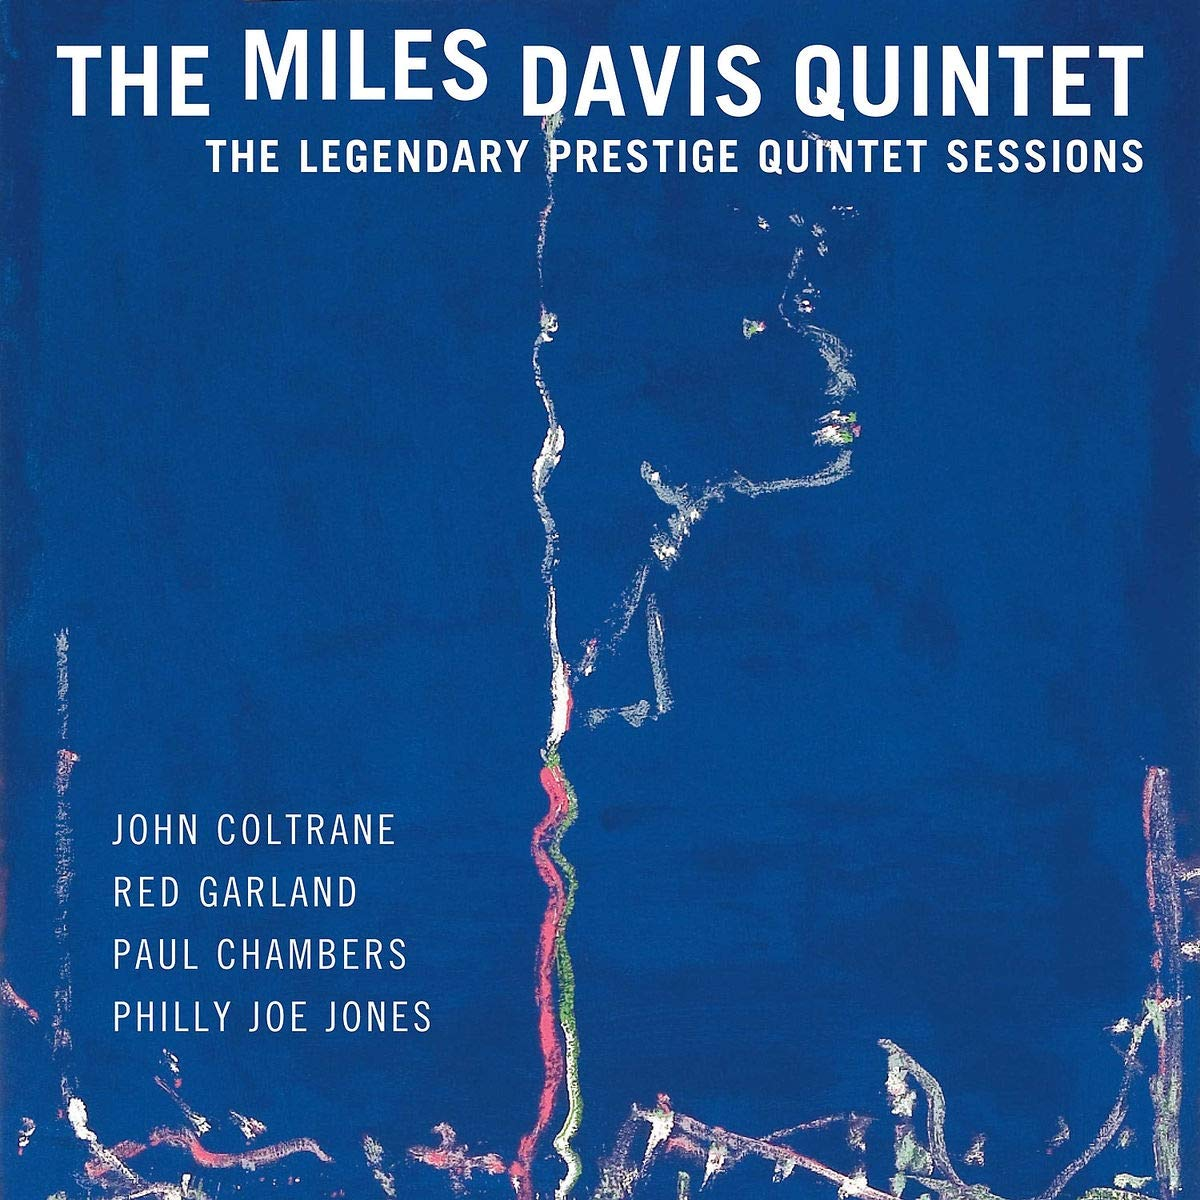 The Miles Davis Quintet The Legendary Prestige Quintet Sessions [6LP]